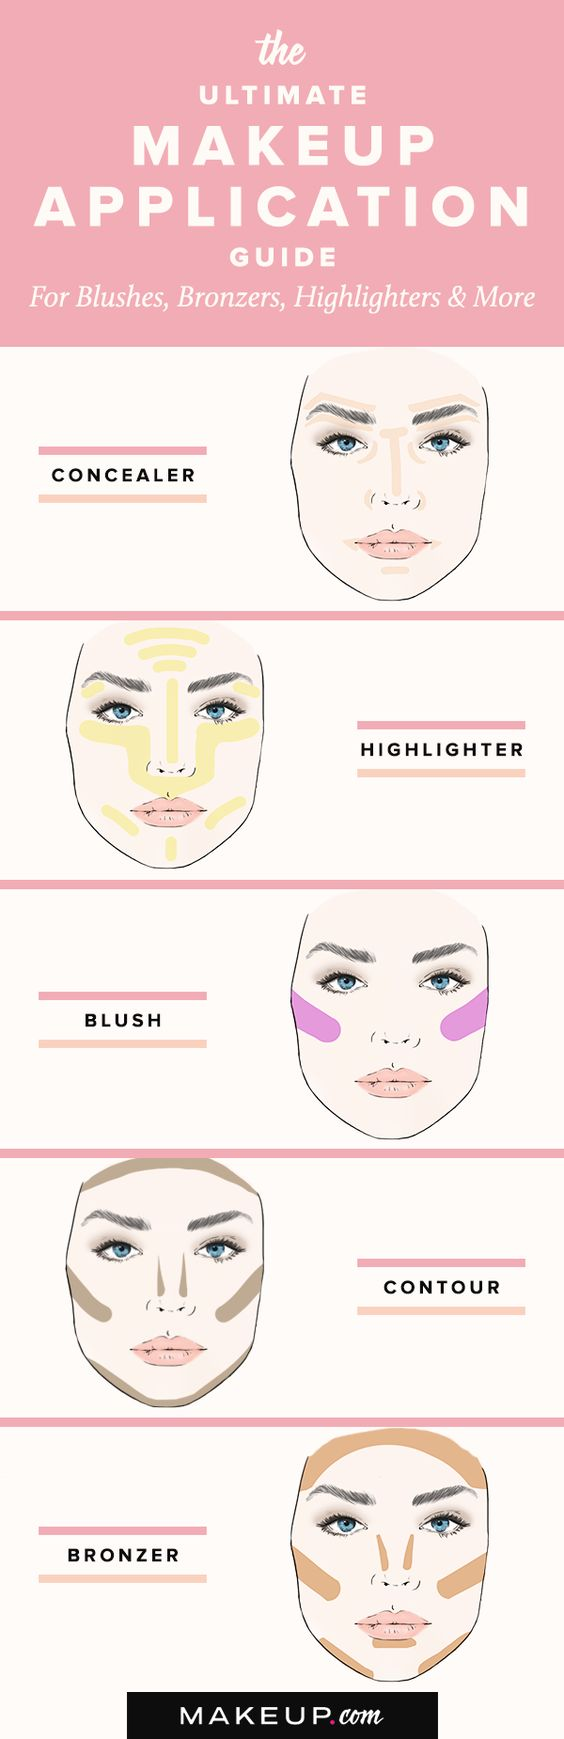 The ultimate makeup application guide for blushes bronzers the ultimate makeup application guide for blushes bronzers highlighters more highlighters makeup and tutorials ccuart Gallery